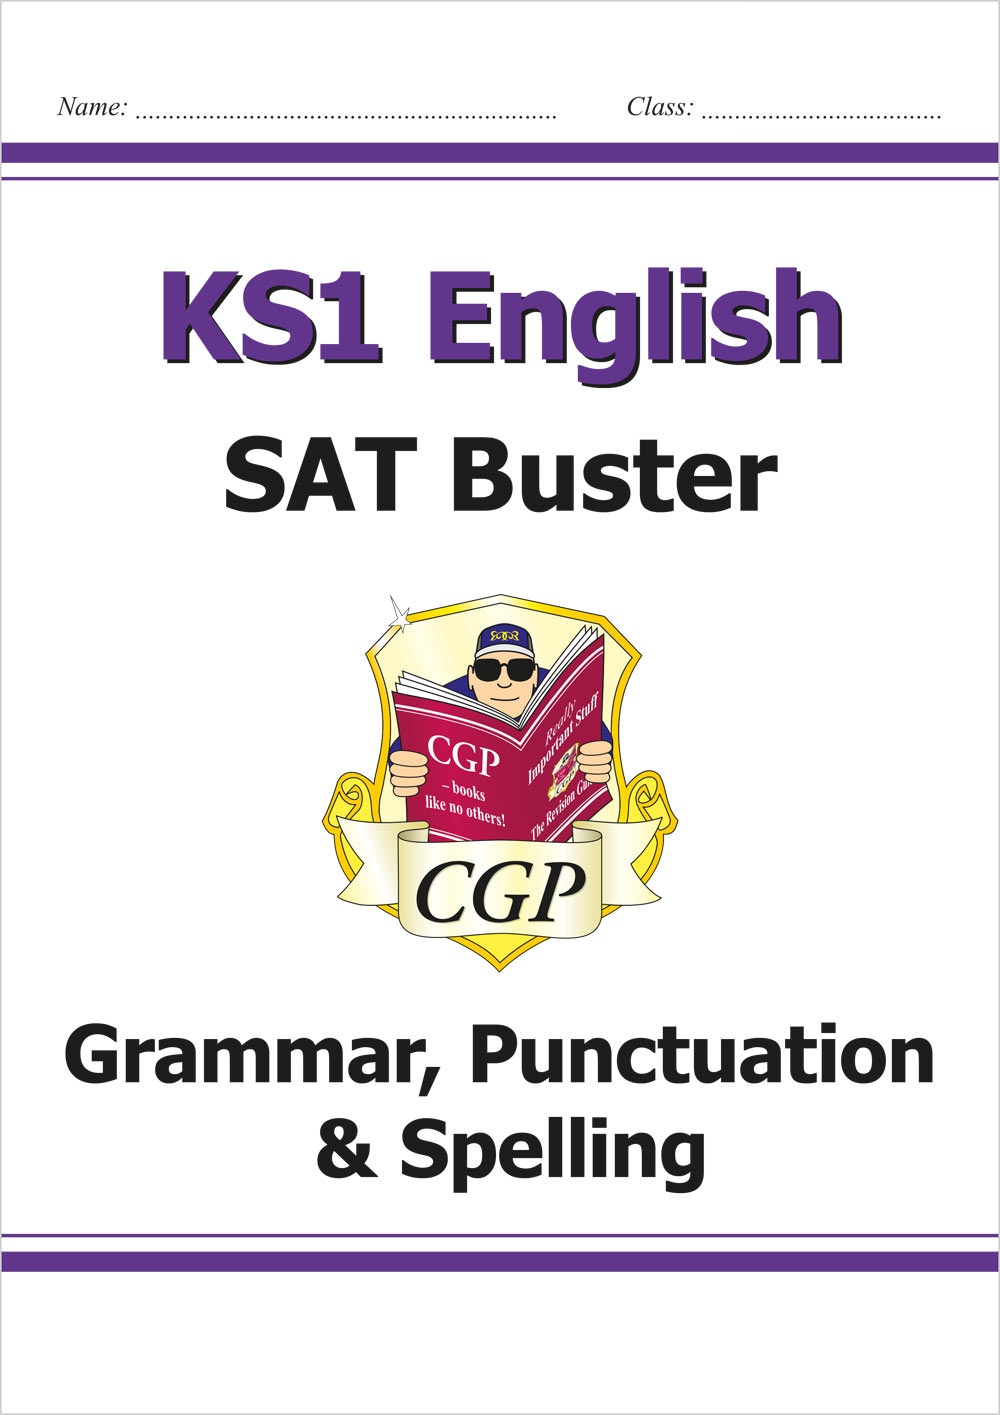 E2G11 - KS1 English SAT Buster: Grammar, Punctuation & Spelling (for tests in 2018 and beyond)